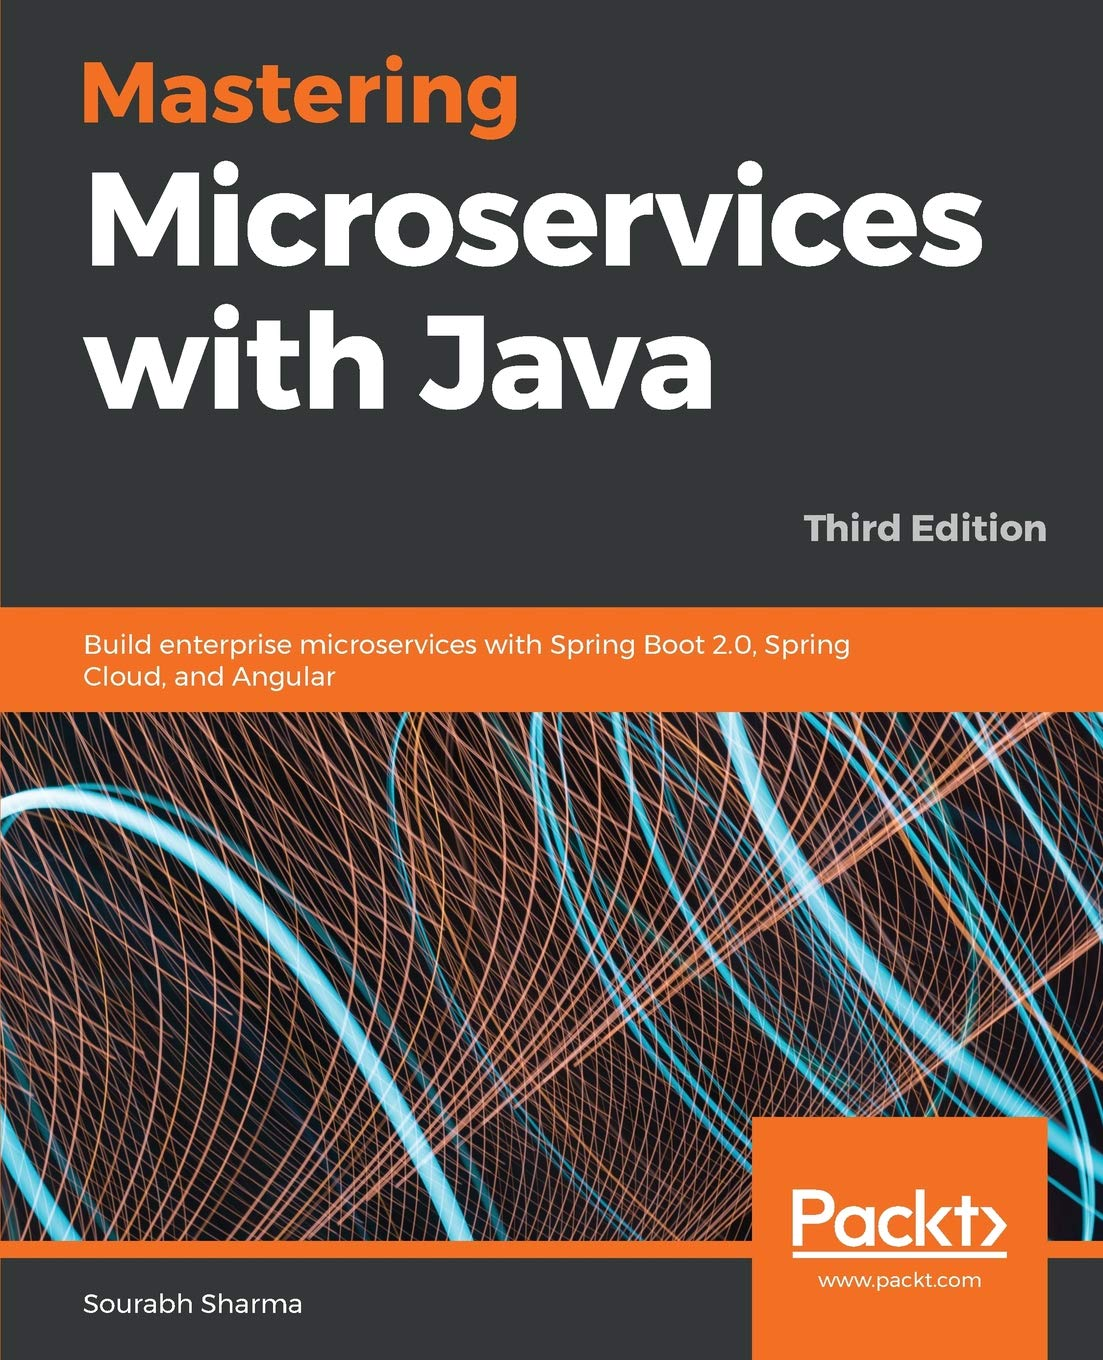 Mastering Microservices with Java: Build enterprise